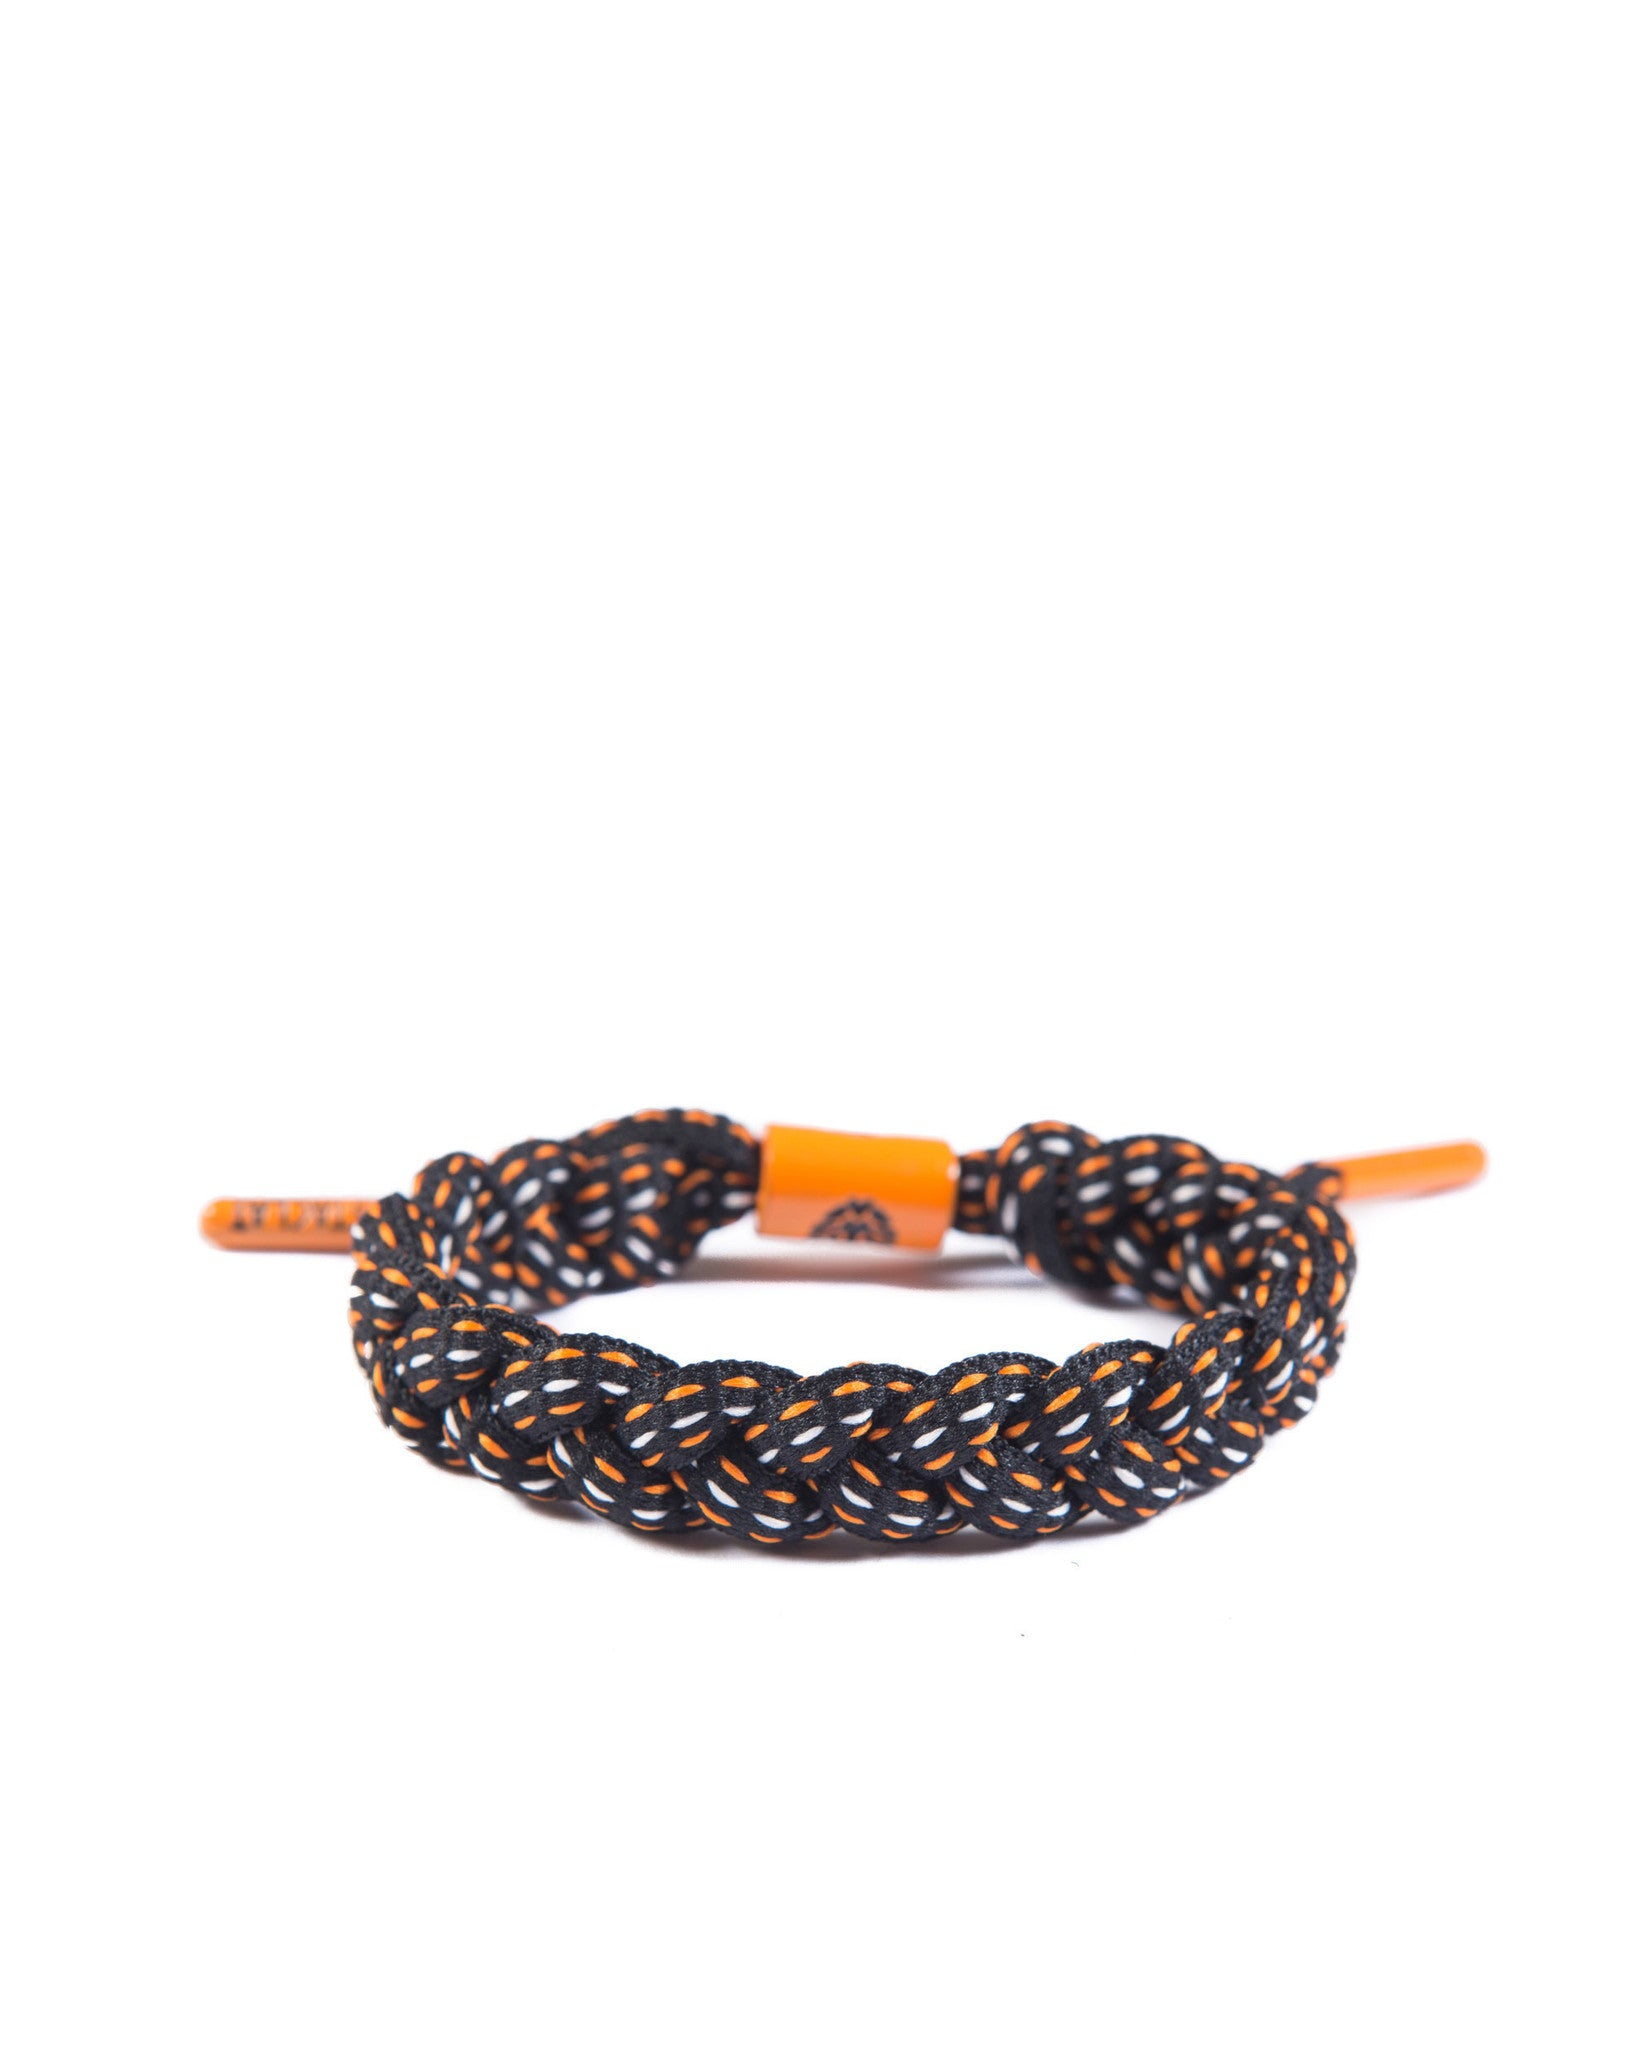 The Bay Shoe Lace Bracelet (Black/Orange)